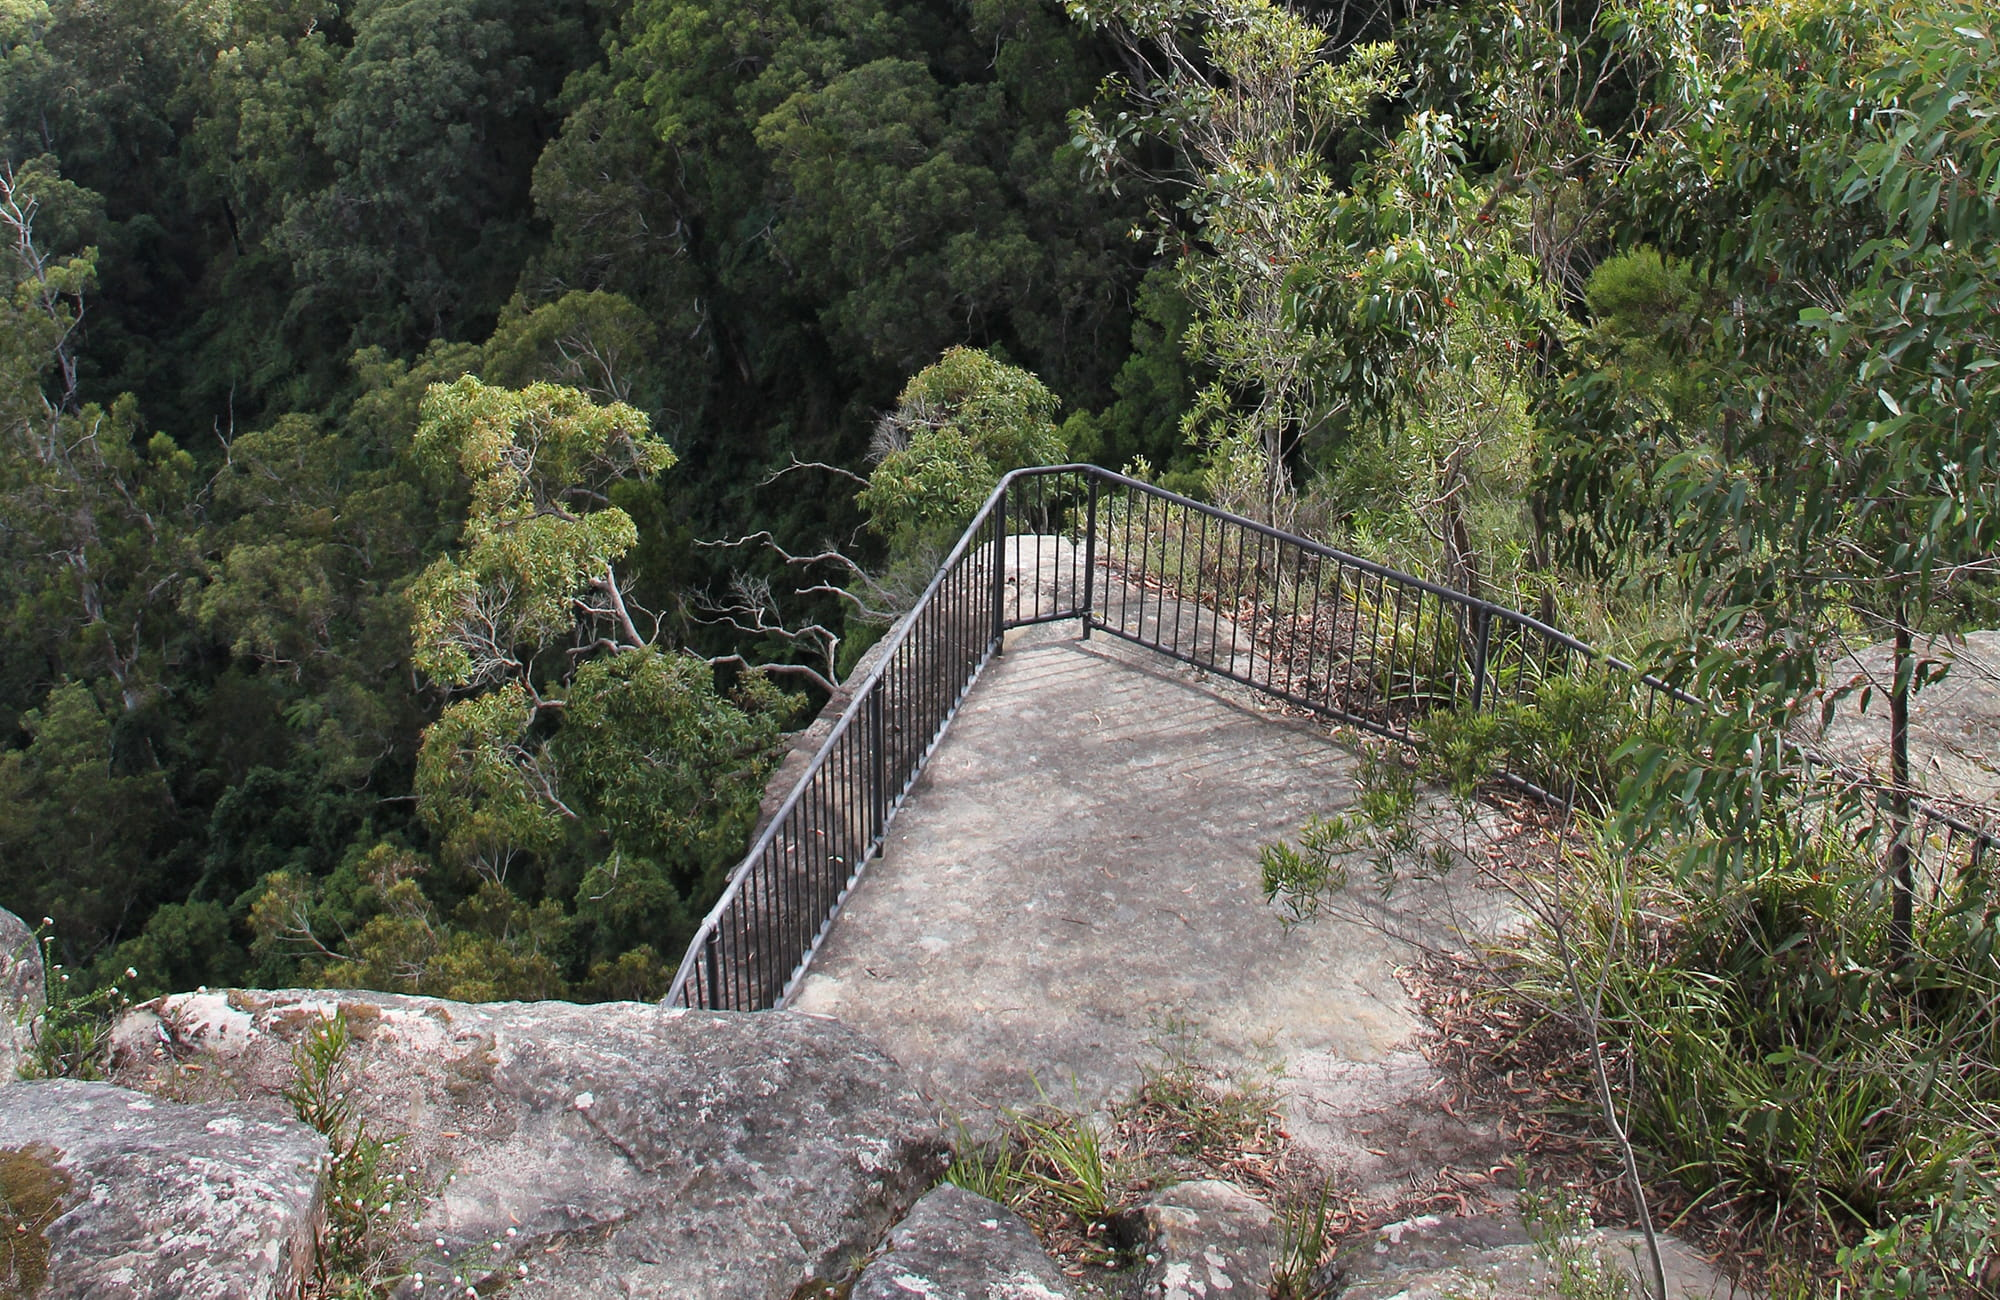 View from above of Grand Canyon lookout platform and surrounding bushland. Photo: John Yurasek/OEH.